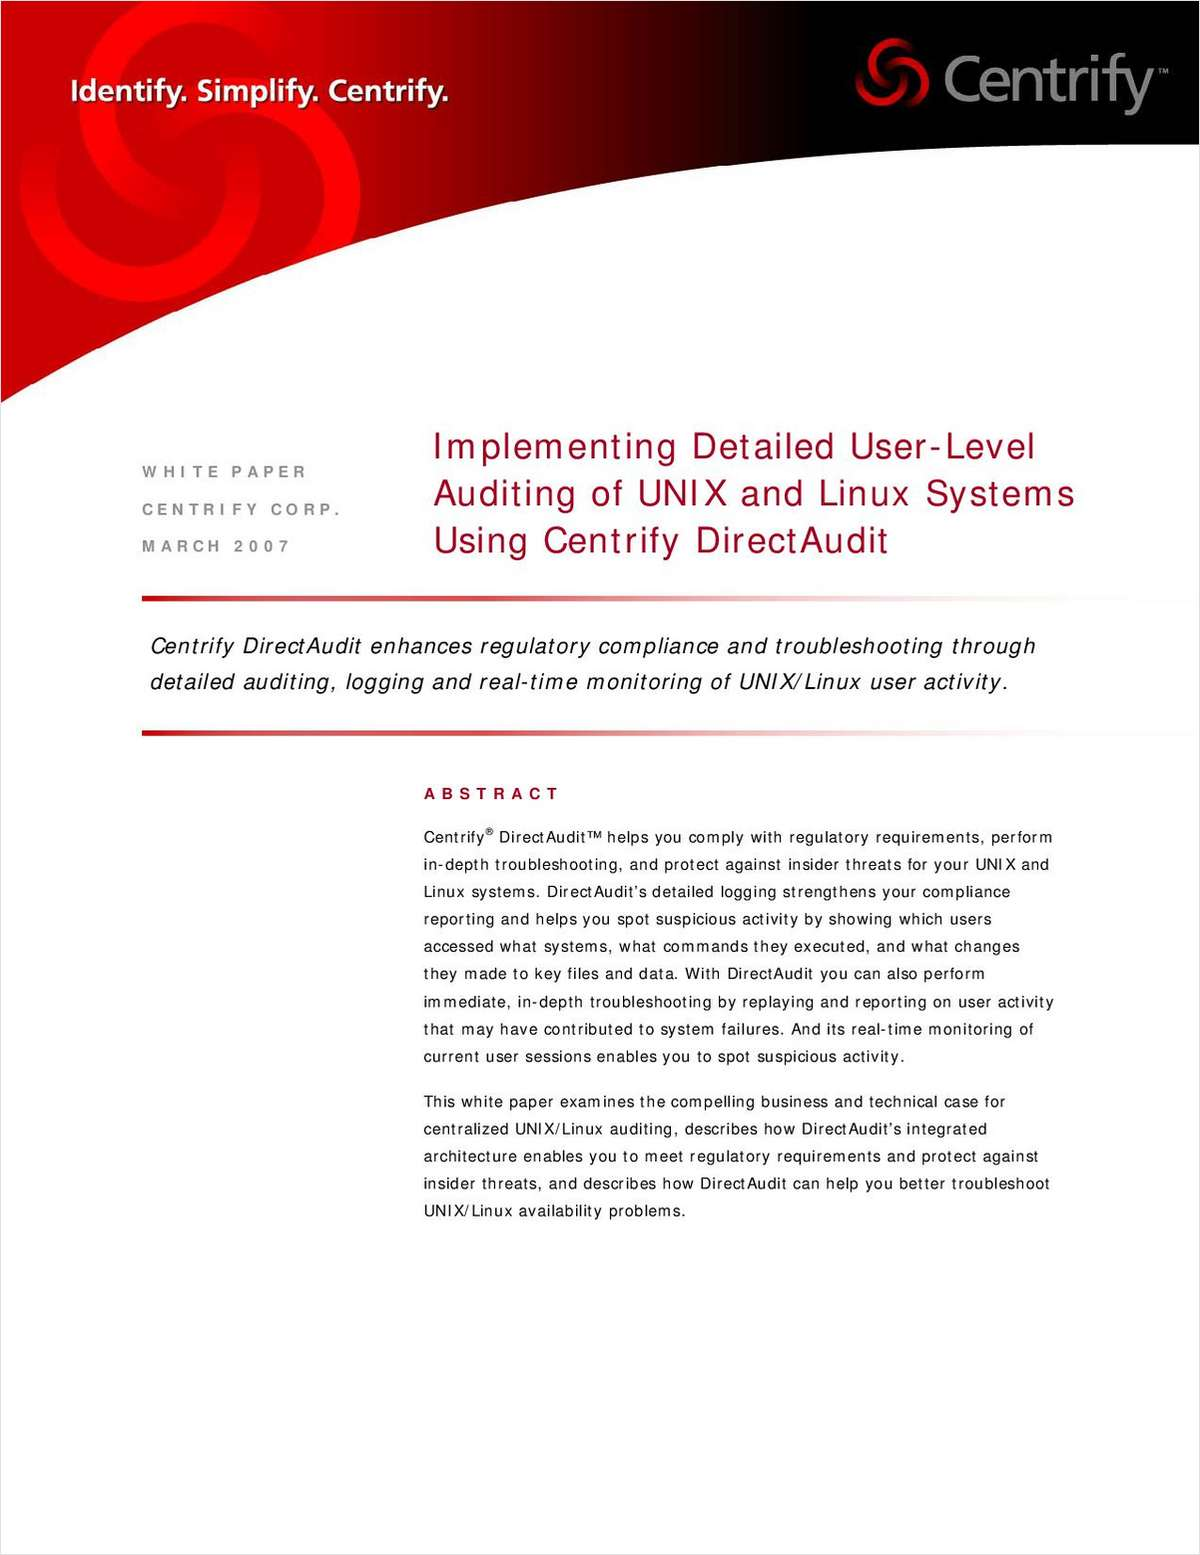 Implementing Detailed User-Level Auditing of UNIX & Linux Systems